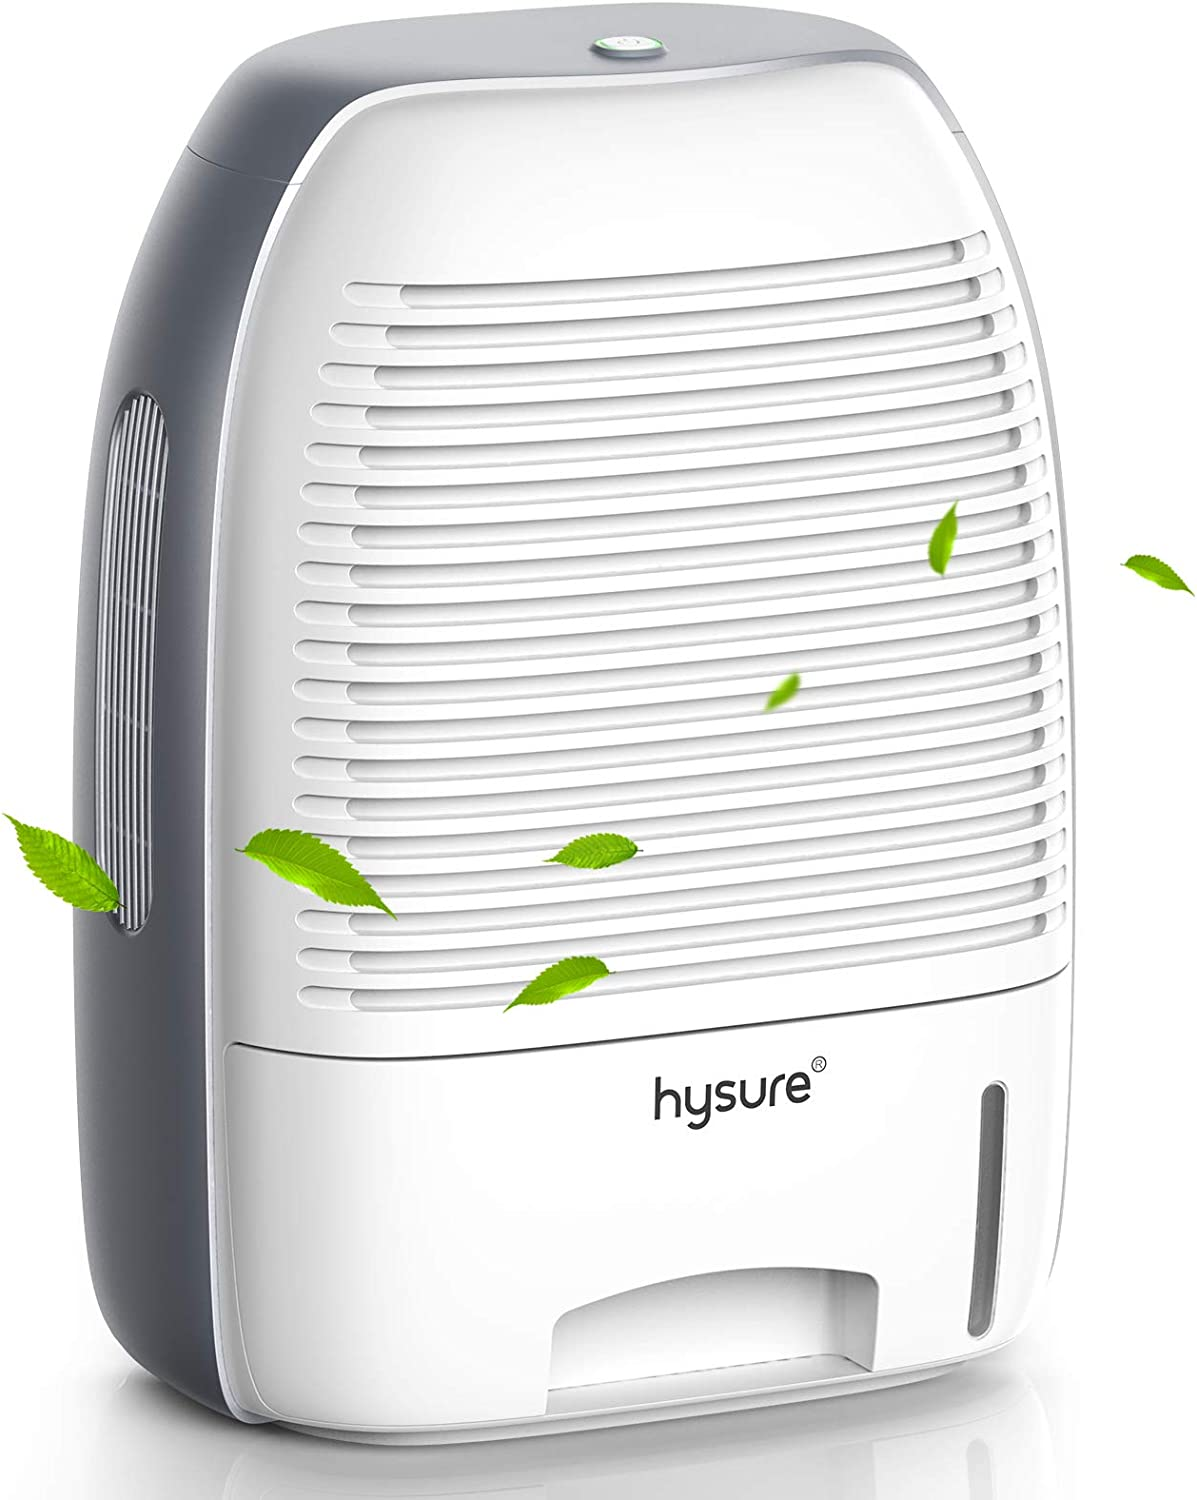 Hysure Sale price Dehumidifier for Home 250 Max 57% OFF sq 1500ml ft 52oz with Capacit